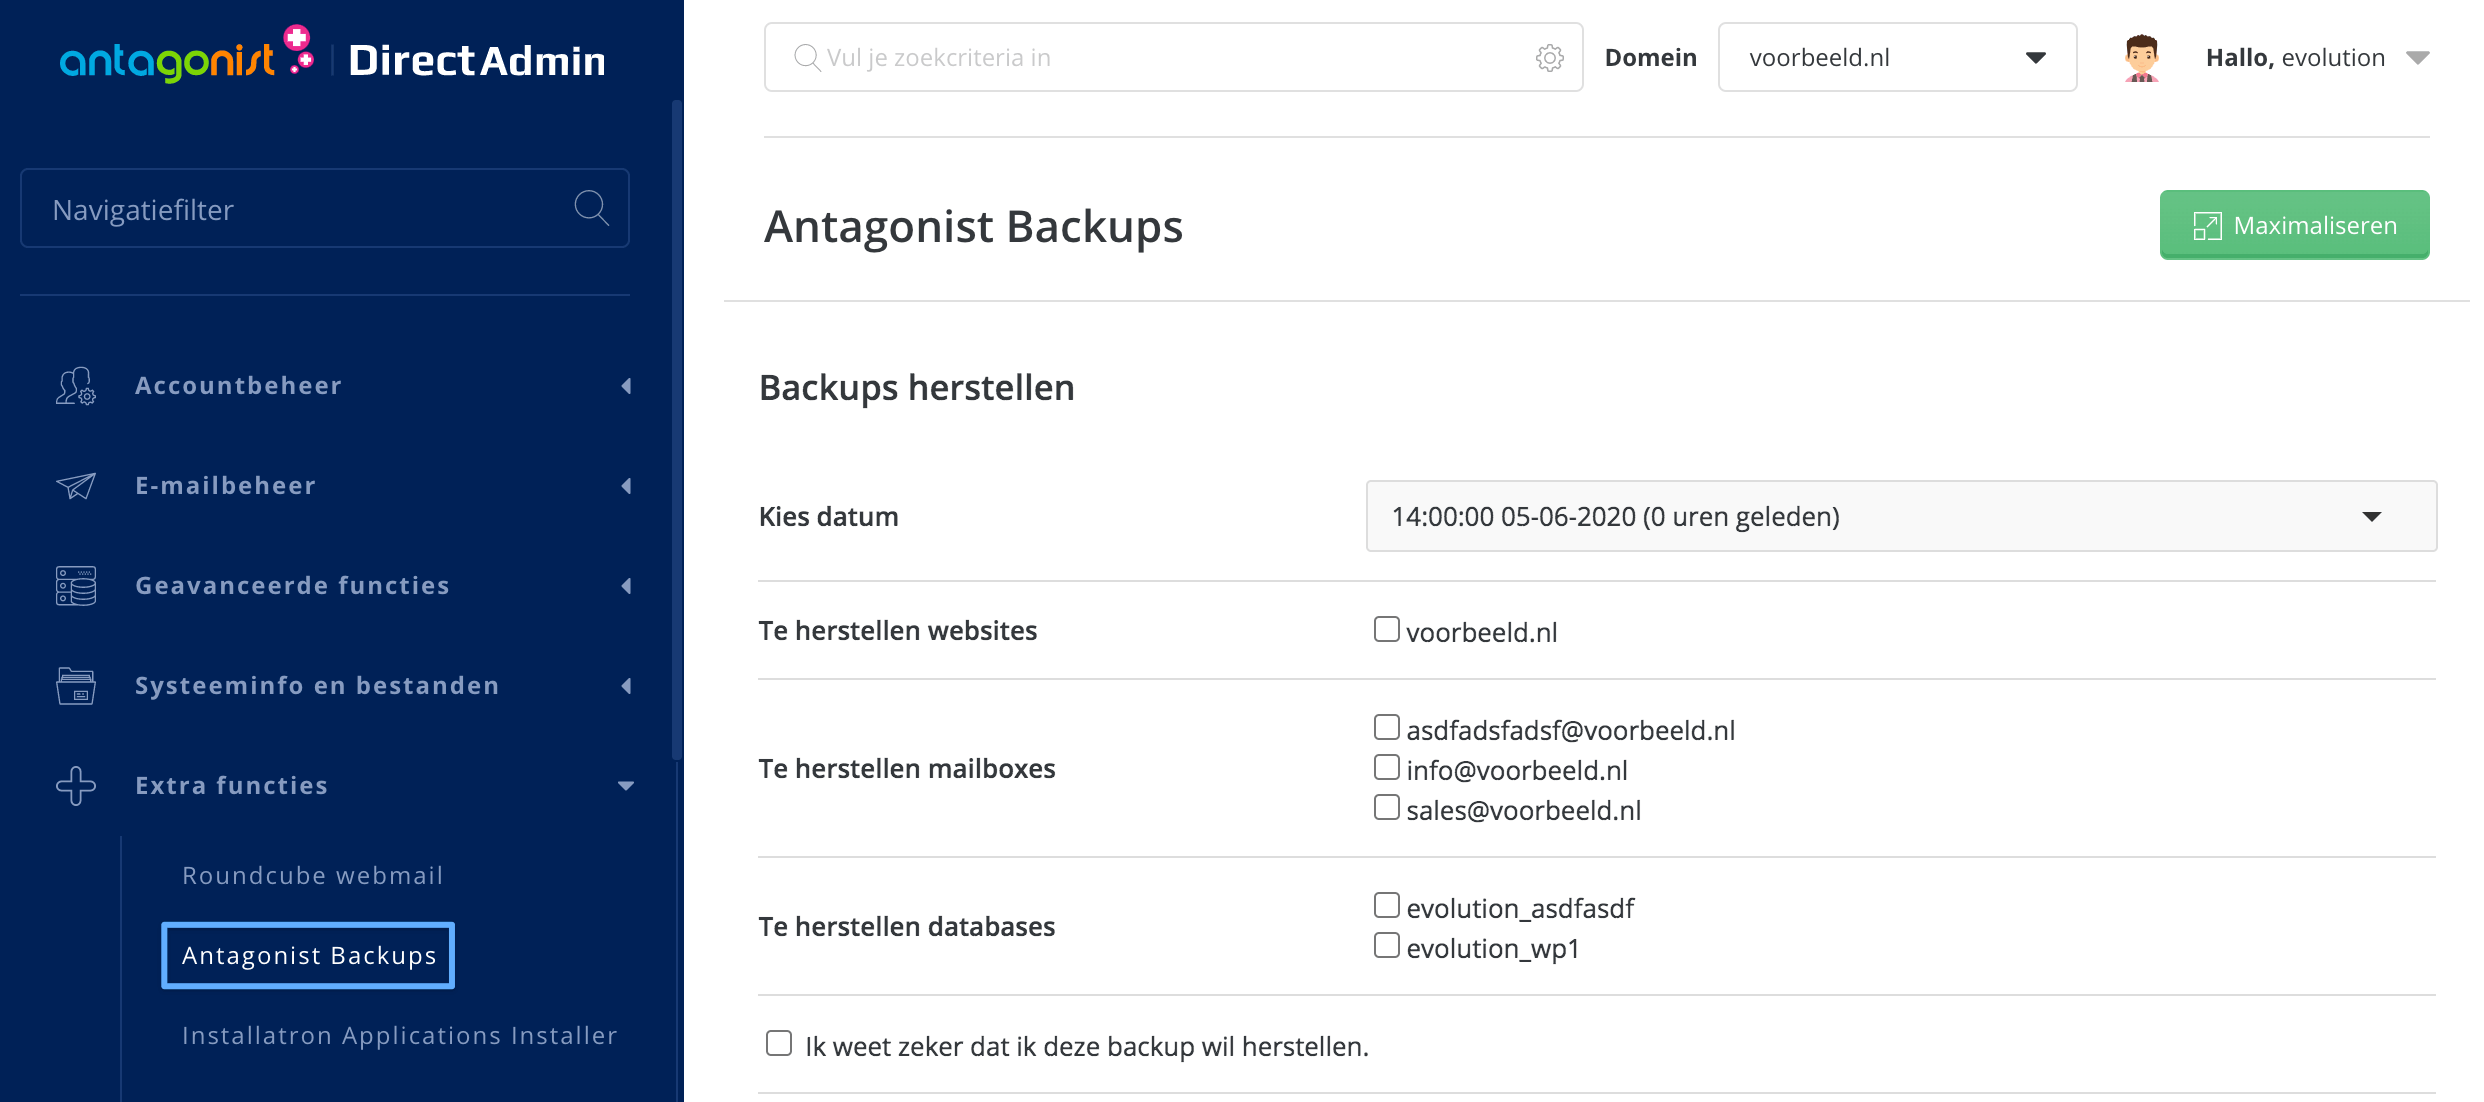 De optie 'Antagonist Backups' in DirectAdmin.